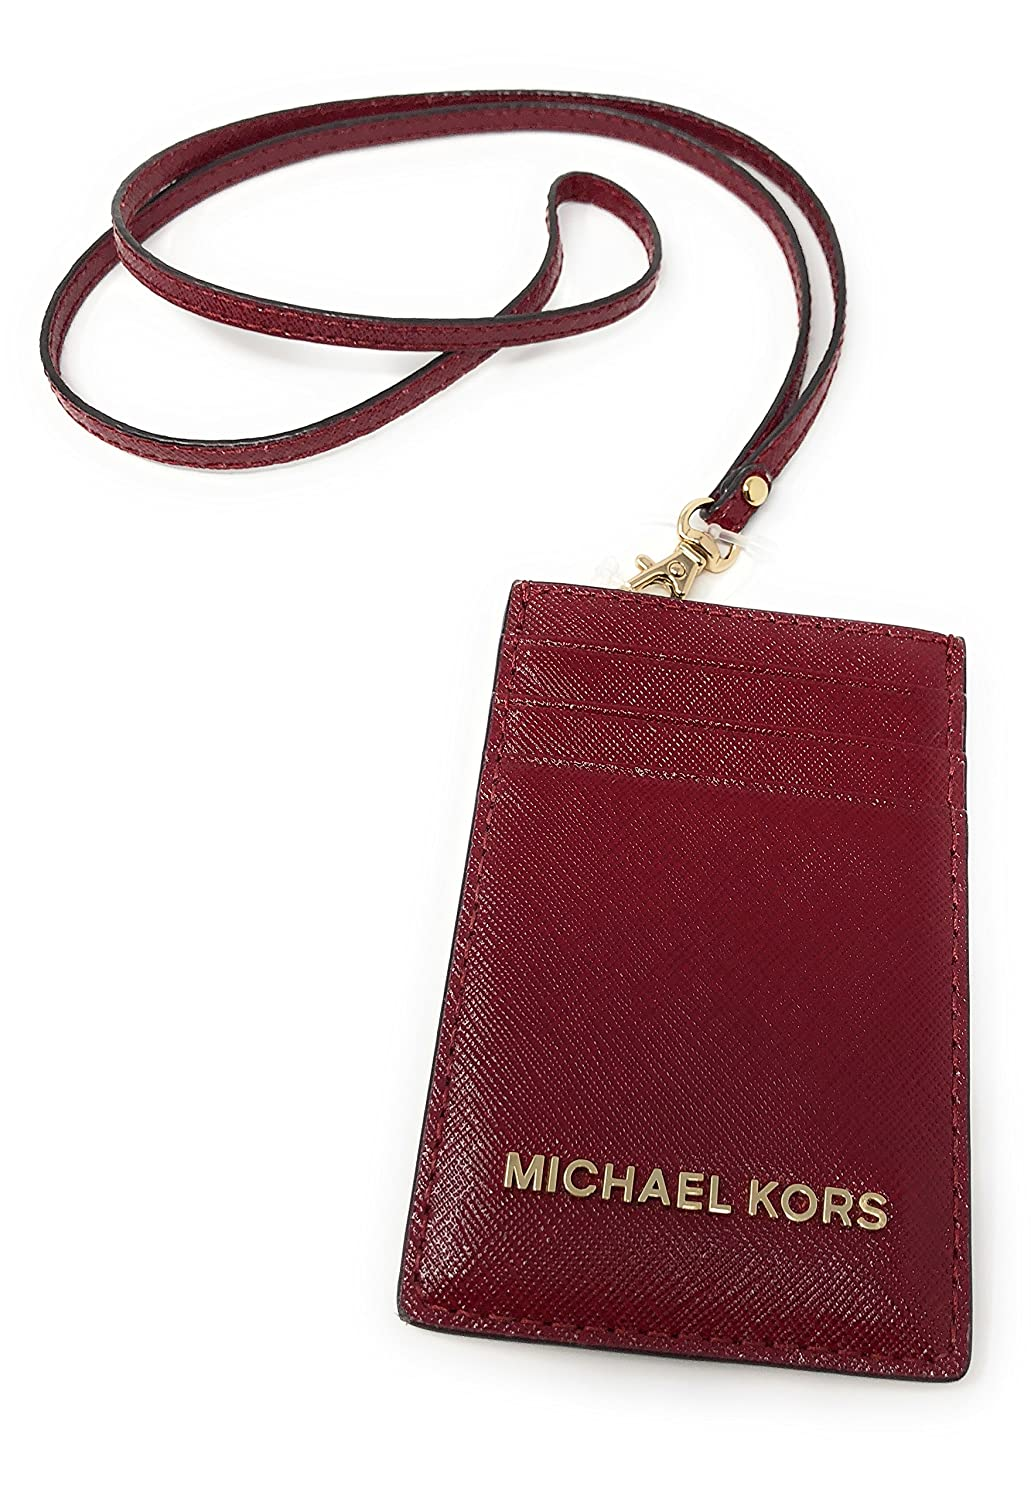 94f37b7a6205 Michael Kors Jet Set Travel Saffiano Leather Lanyard ID Card Case Cherry at  Amazon Women s Clothing store